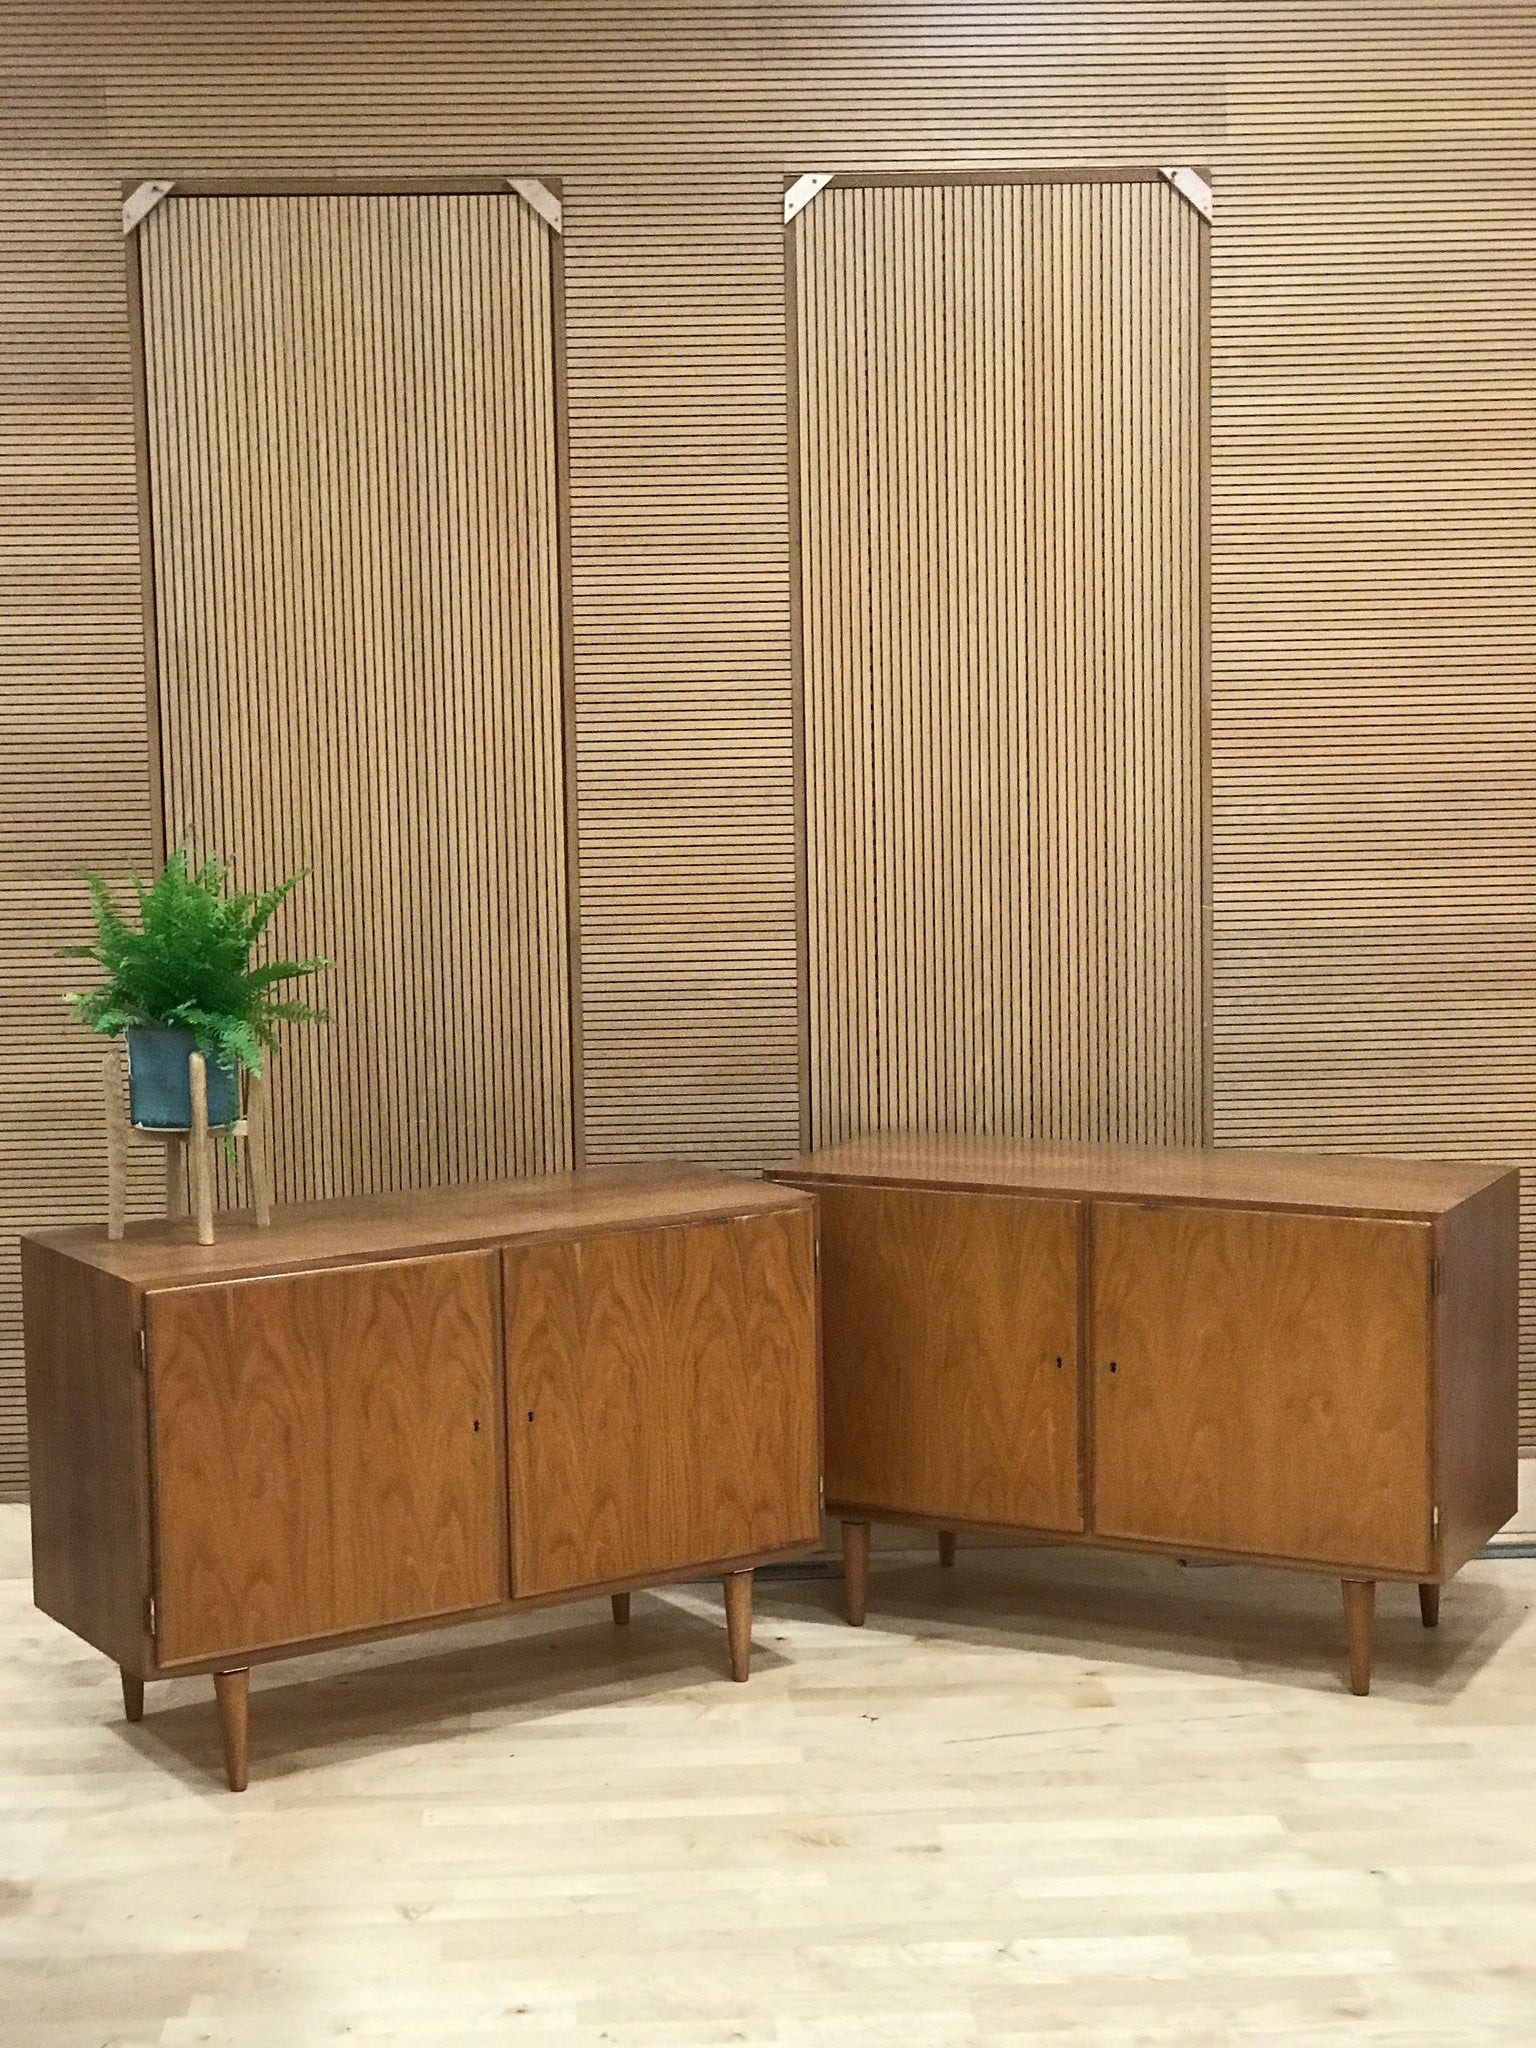 Carlo Jensen for Hundevad & Co, small Danish mid-century cabinets